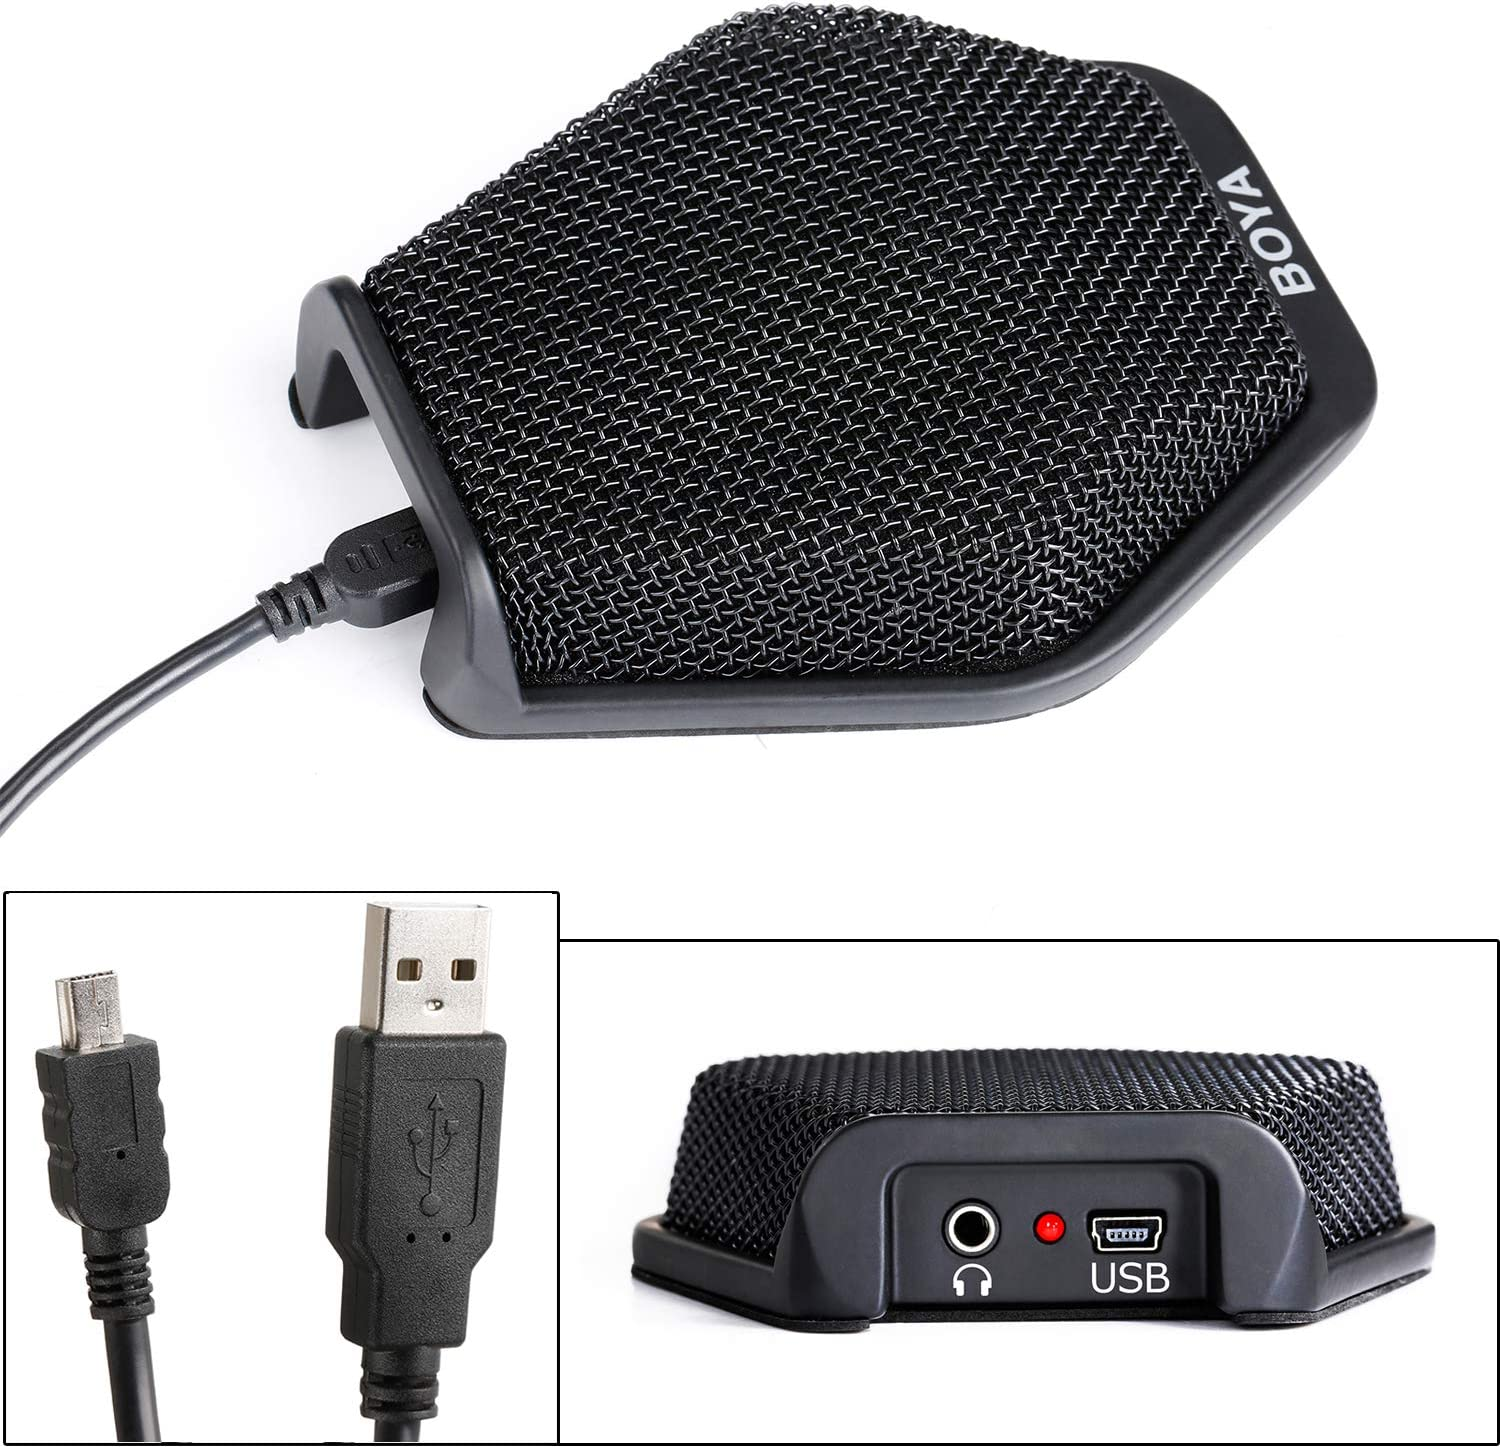 BOYA USB Conference Condenser Microphone, Office Computer Laptop PC Microphone for Windows Mac Dictation, Recording, YouTube, Conference Call